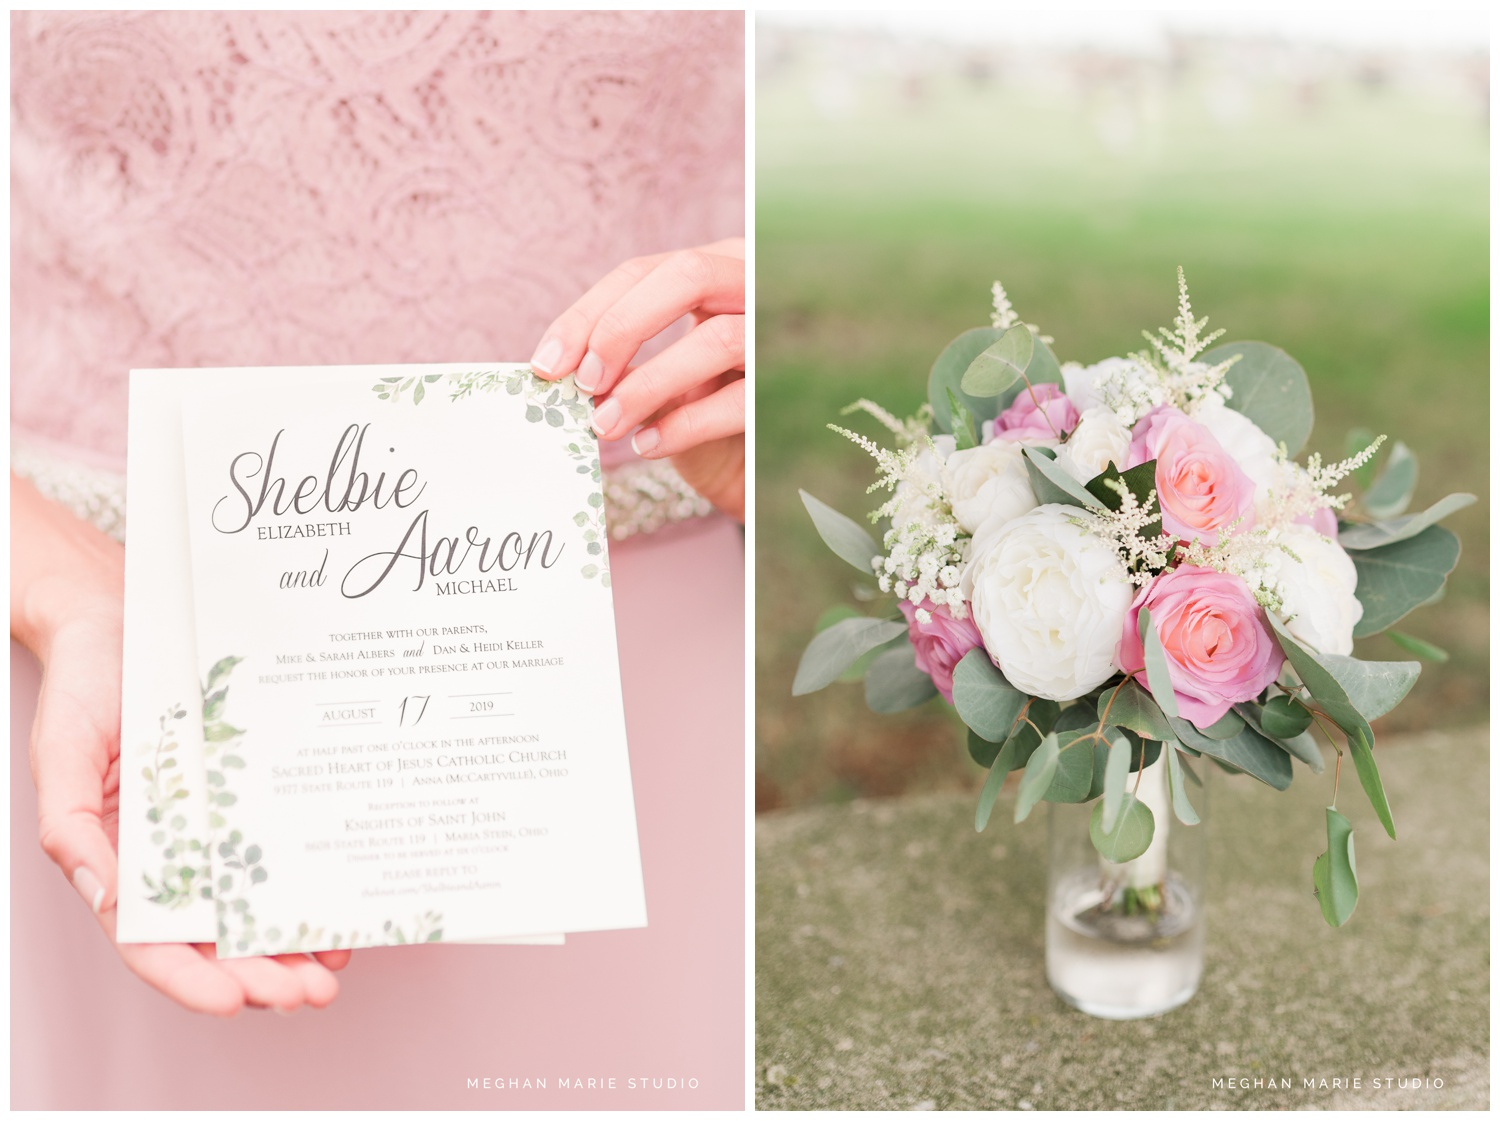 meghan marie studio wedding photographer ohio troy dayton columbus small town rustic rural farm cows vintage mauves dusty rose pinks whites ivorys grays f1 sound paper lanterns pearls_0581.jpg